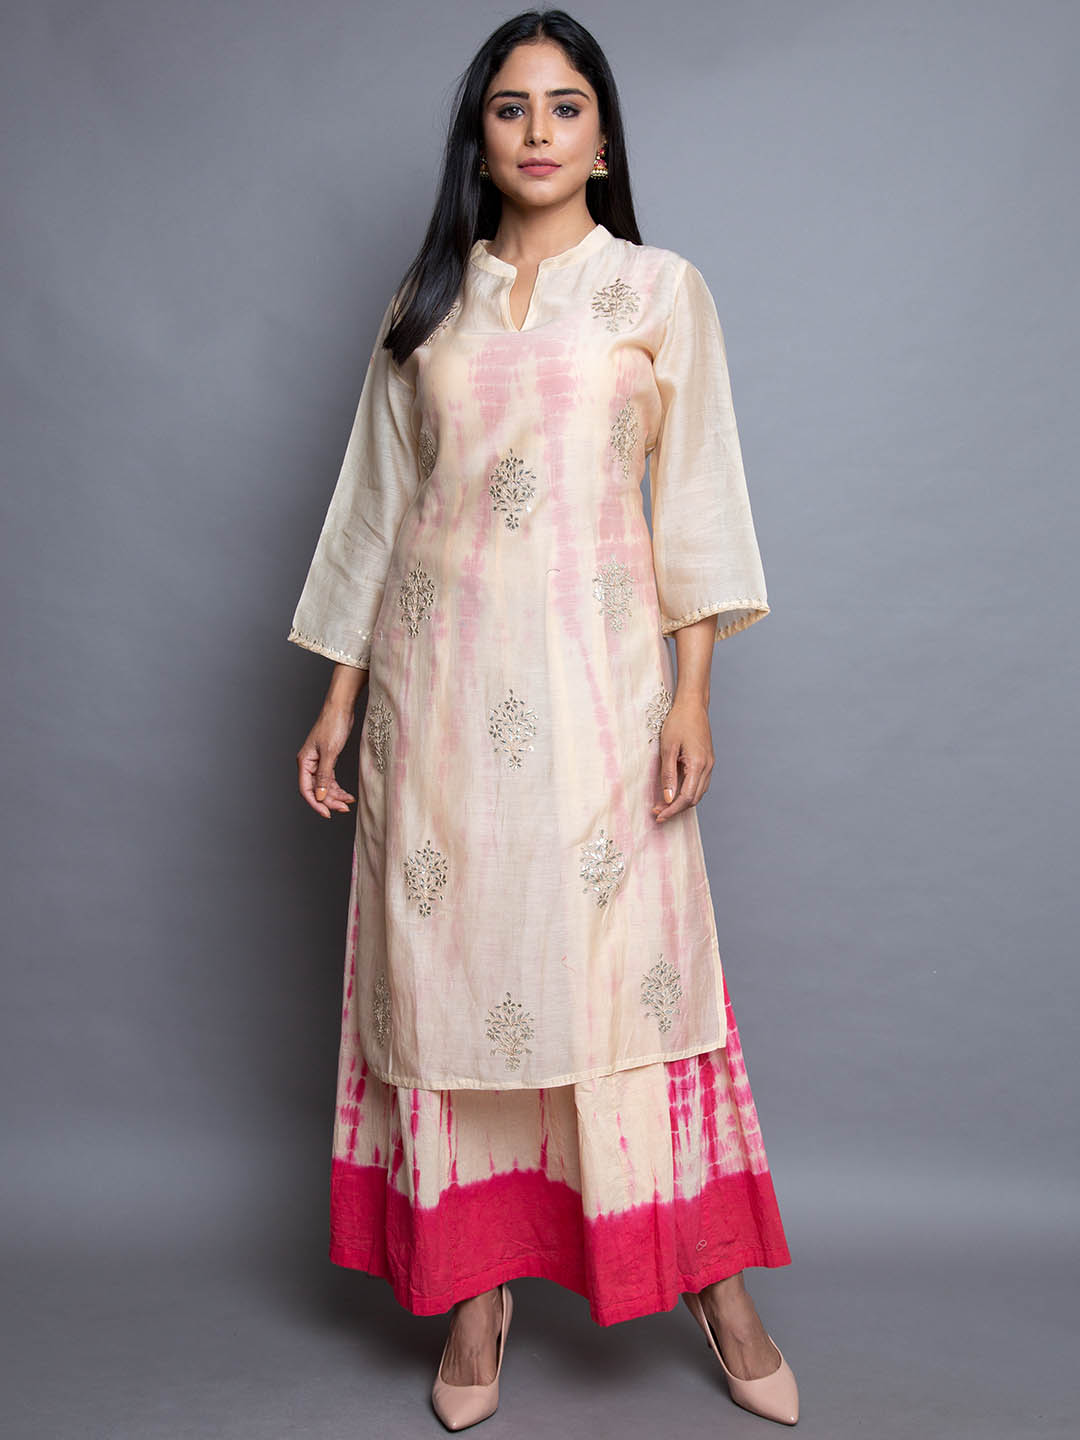 CHANDERI WITH GOTA EMBROIDERY SUIT